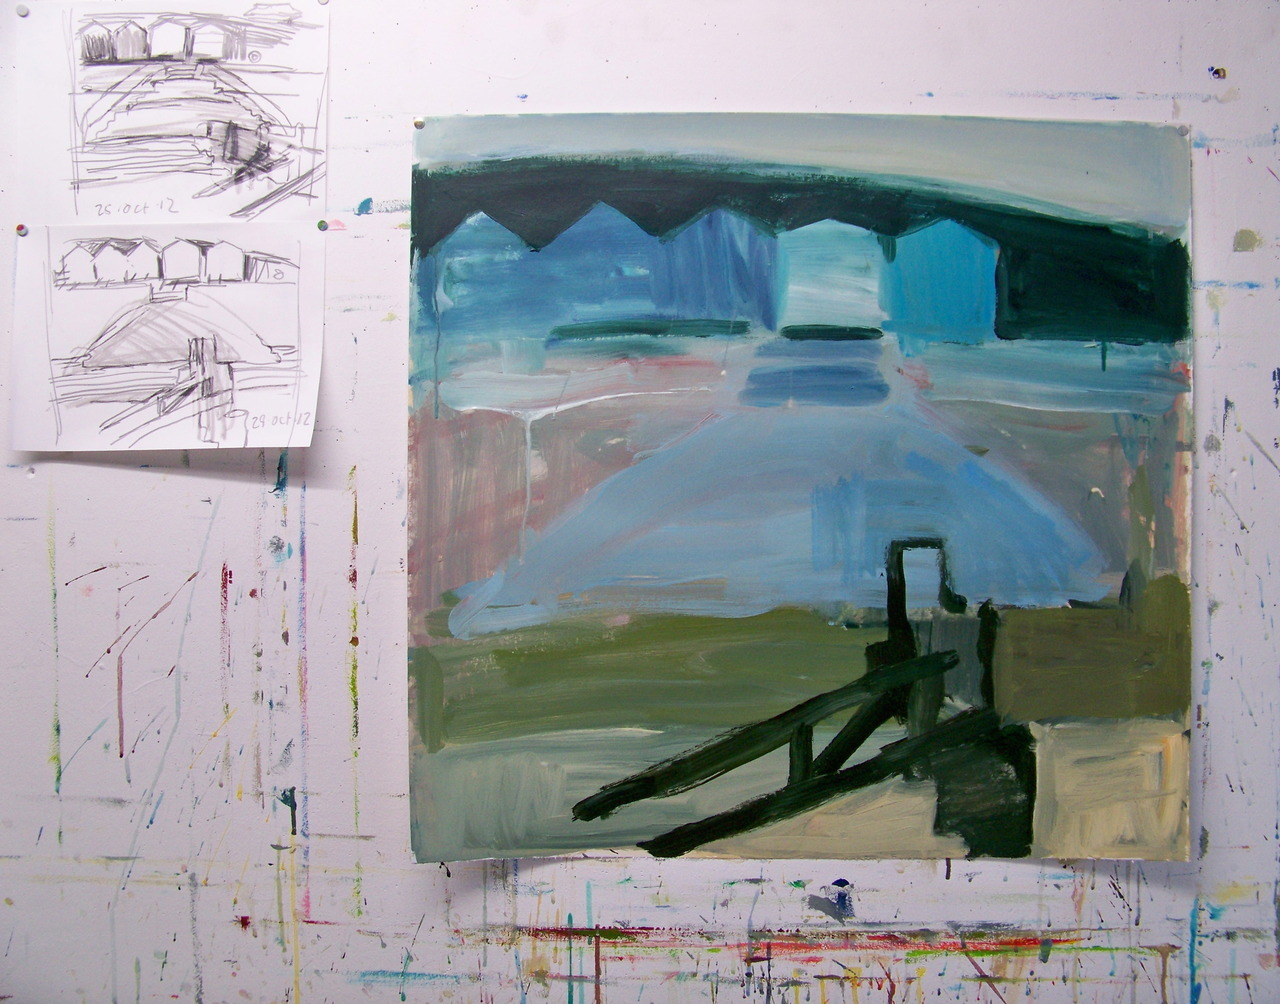 Another new painting on paper. I have been making drawings of the seawall and beach huts and am enjoying having objects back in the paintings after painting just the sea for the last 12 months!